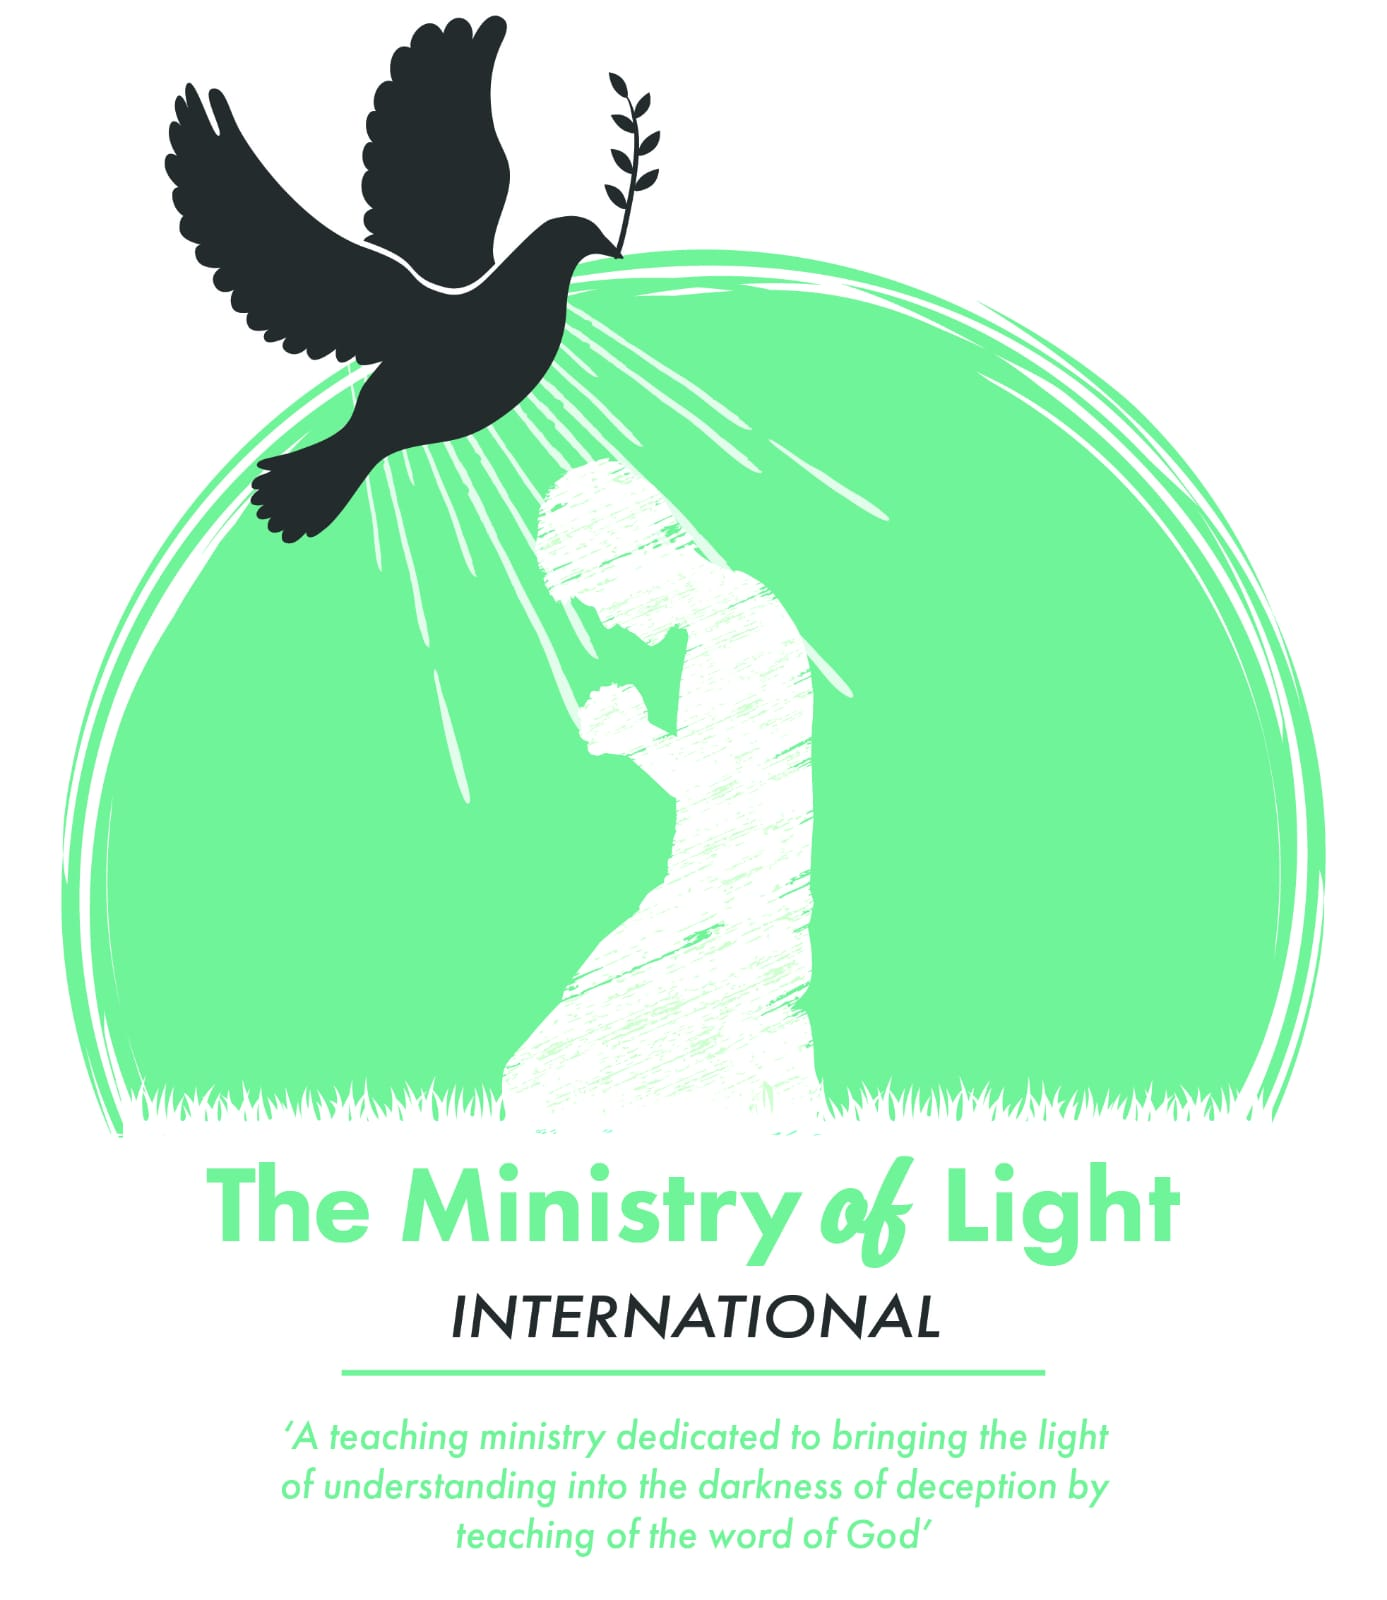 About MOLI - The Ministry of Light International (MOLI) was birthed in response to the command of God in 2018. The Ministry of Light International is NOT a church, but a teaching ministry.Our Vision:Our core mandate is to bring the light of understanding into the darkness of deception by teaching the word of God.Our Mandate Core Scripture:John 1:5Our Supporting Scriptures:Proverbs 4:7, Psalm 119:105, Psalm 119:130, John 16:13